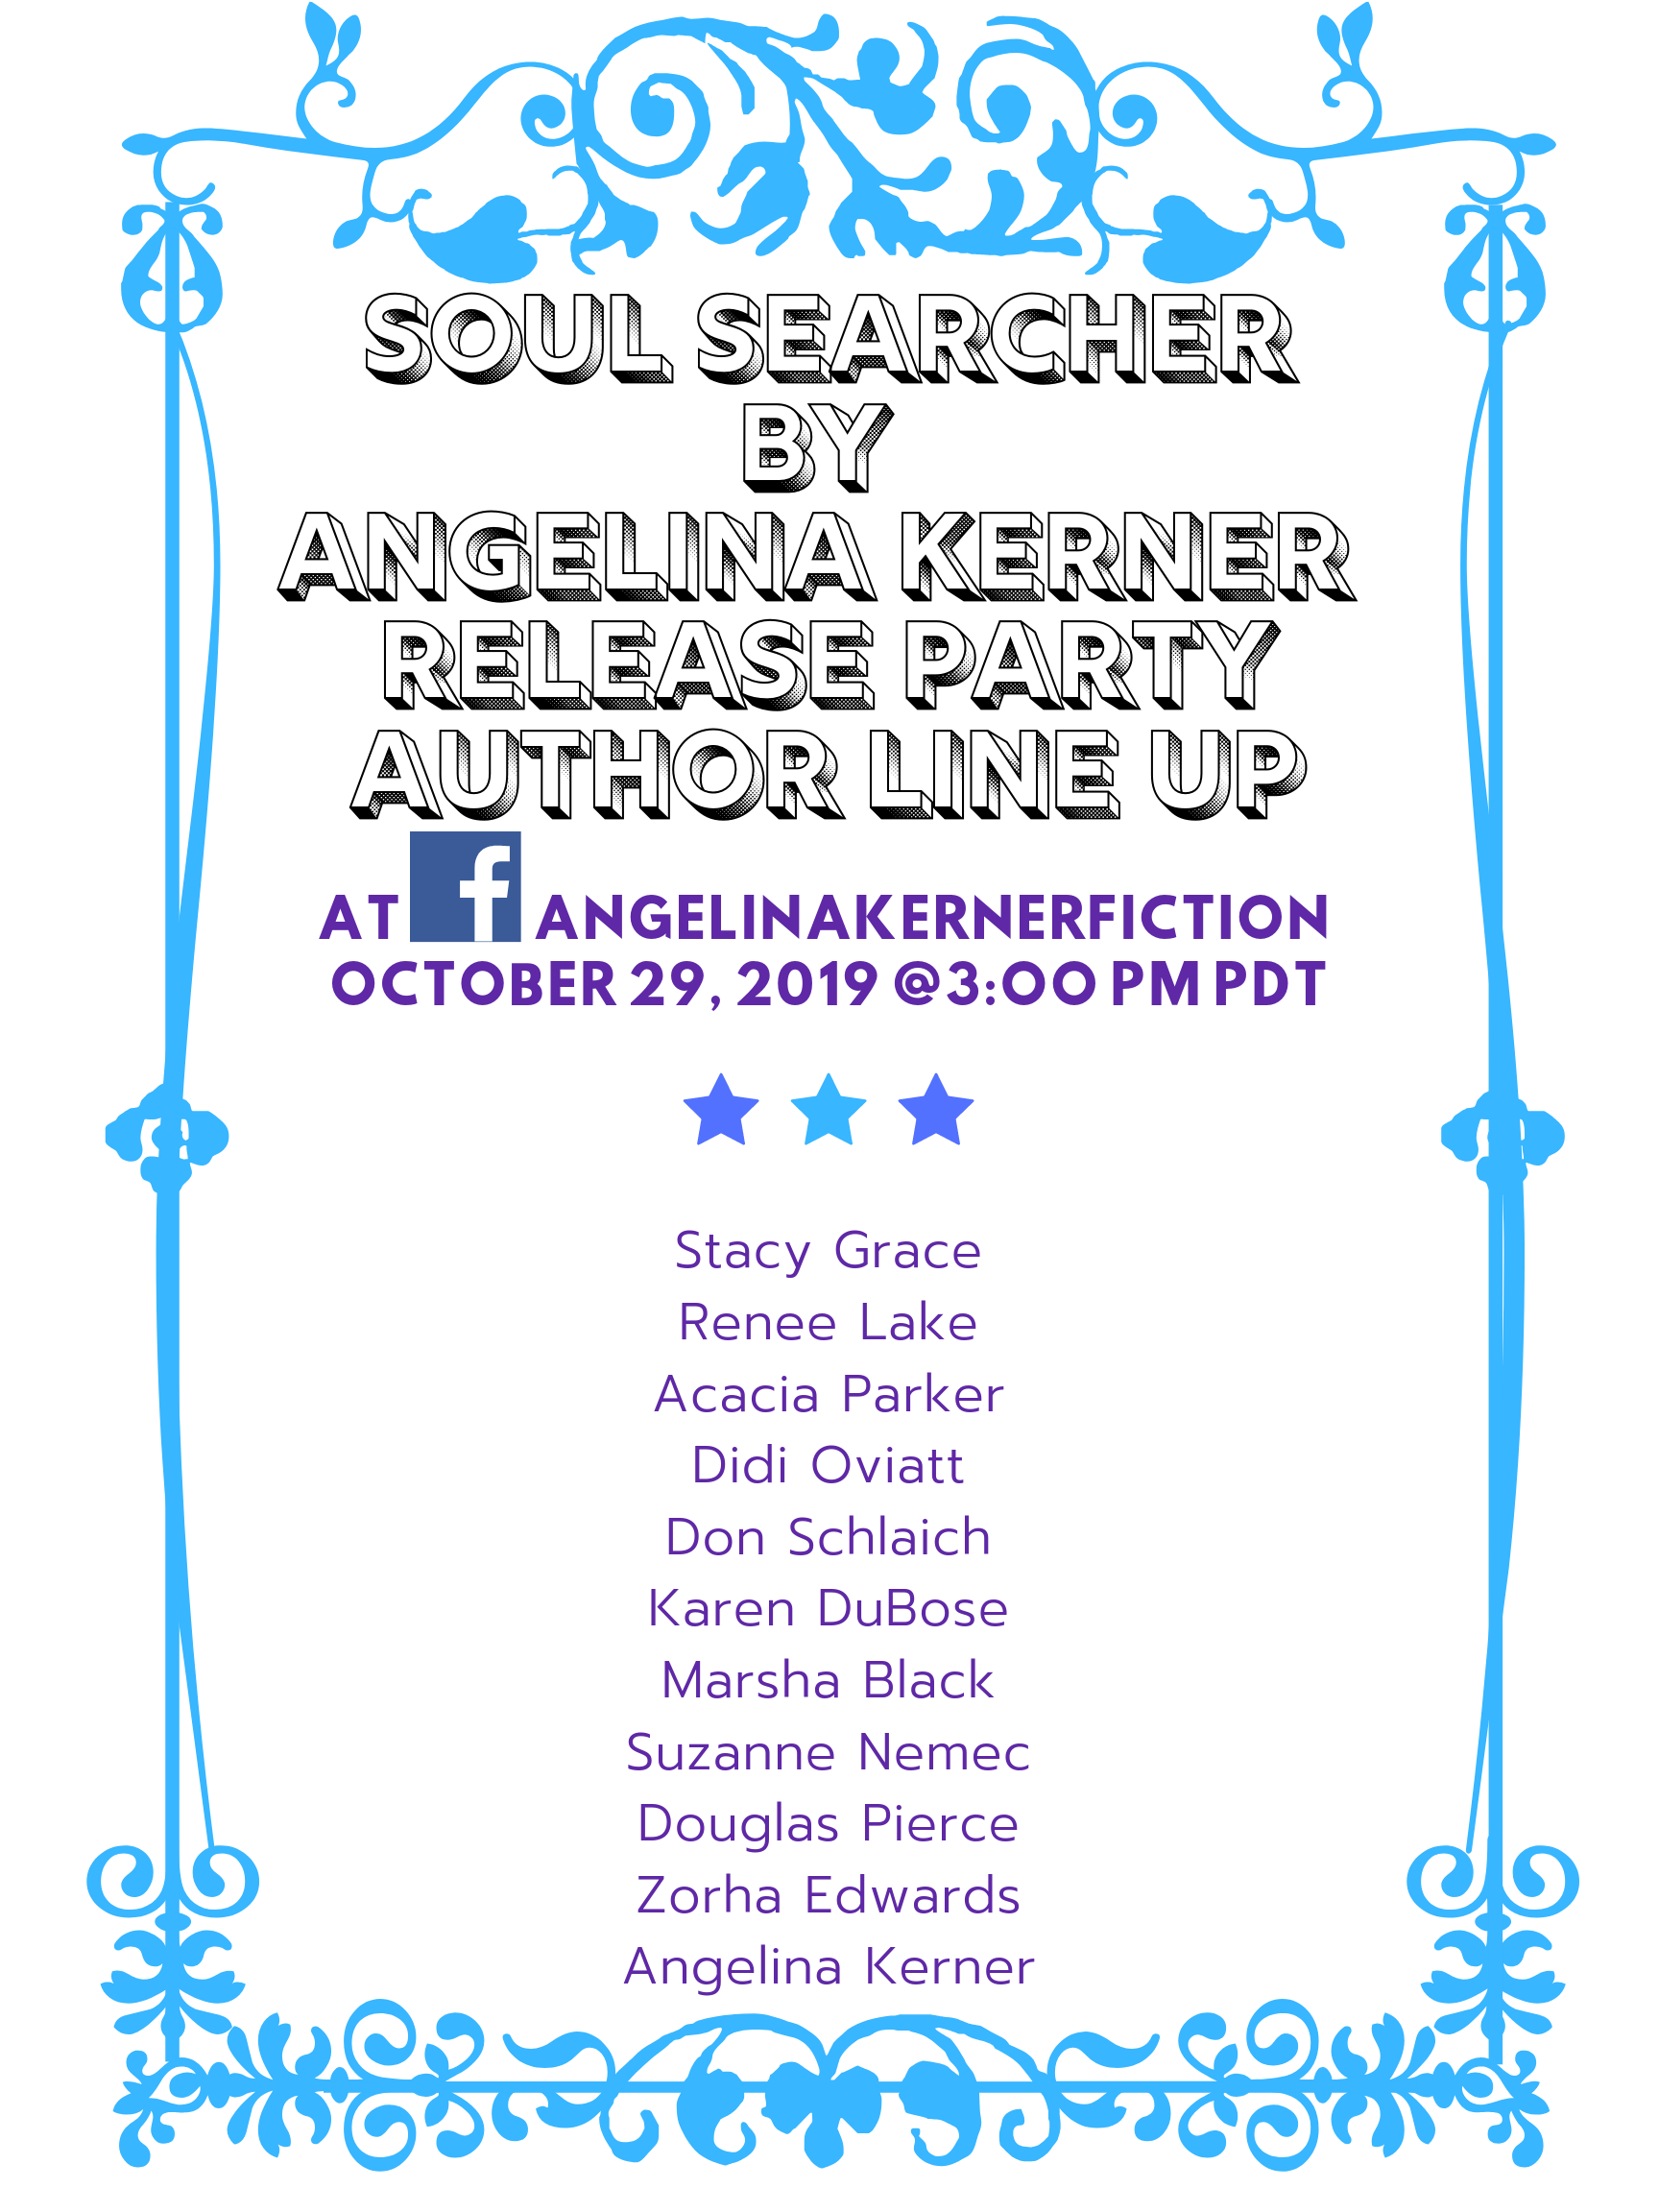 soul searcher author line up